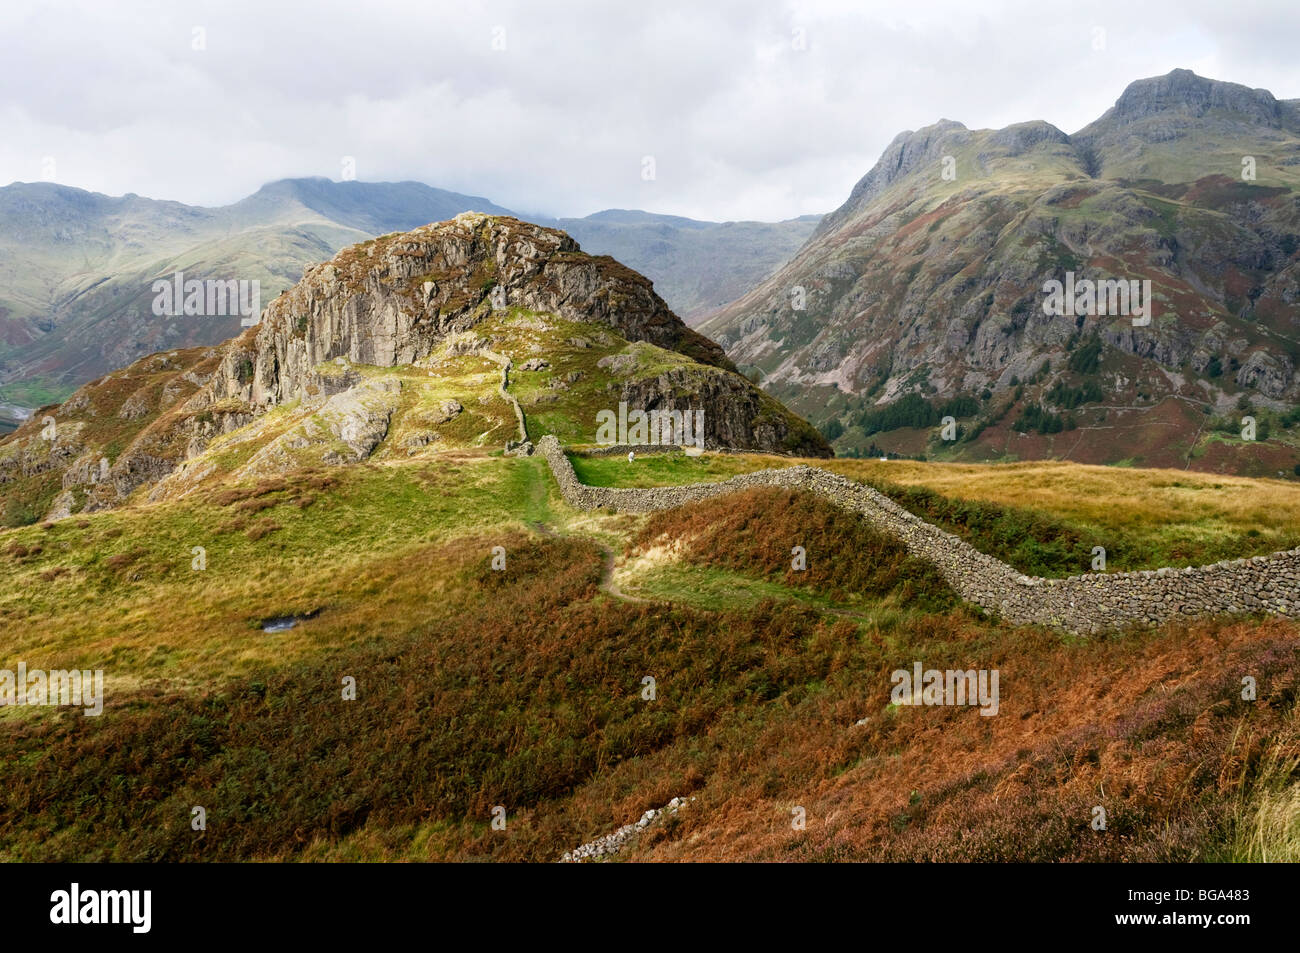 Stock Photo Traditional Food Cache Athabascan Chena Indian Village Alaska 24954995 moreover WS PR1 MM PE05 further Csms1087 as well Stock Photo Side Pike With Langdale Pikes In Background Lake District Cumbria 27267747 additionally Terminator Genisys Mms Af 1 6 Endoskeleton. on walking with shopping cart